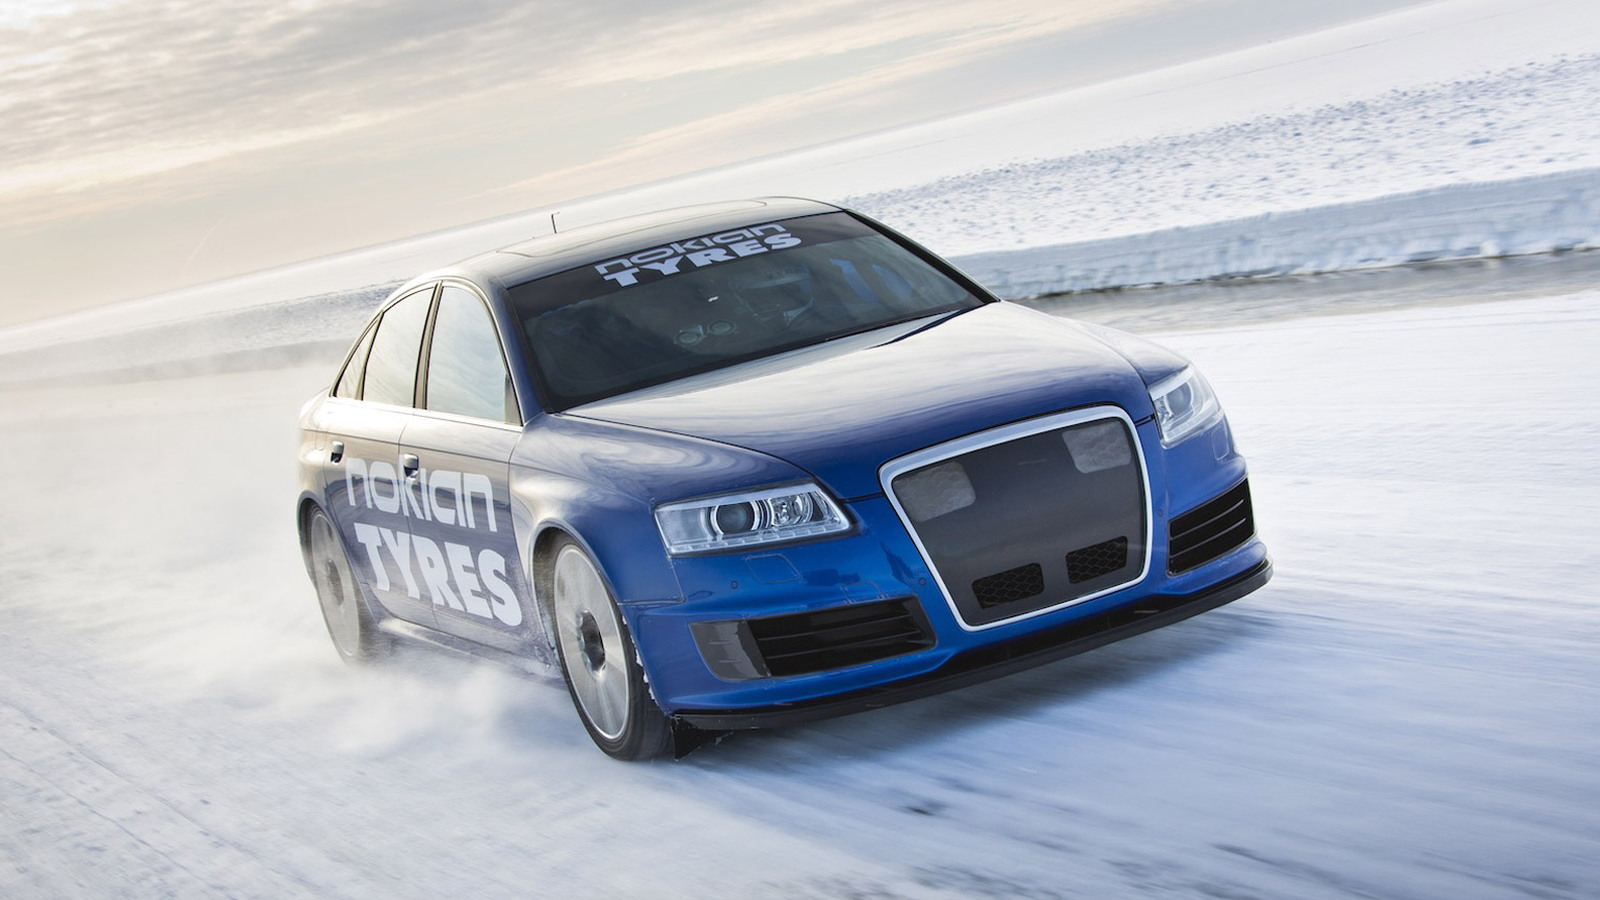 Nokian Tyres' Audi RS 6 driven to 208.6 mph on ice